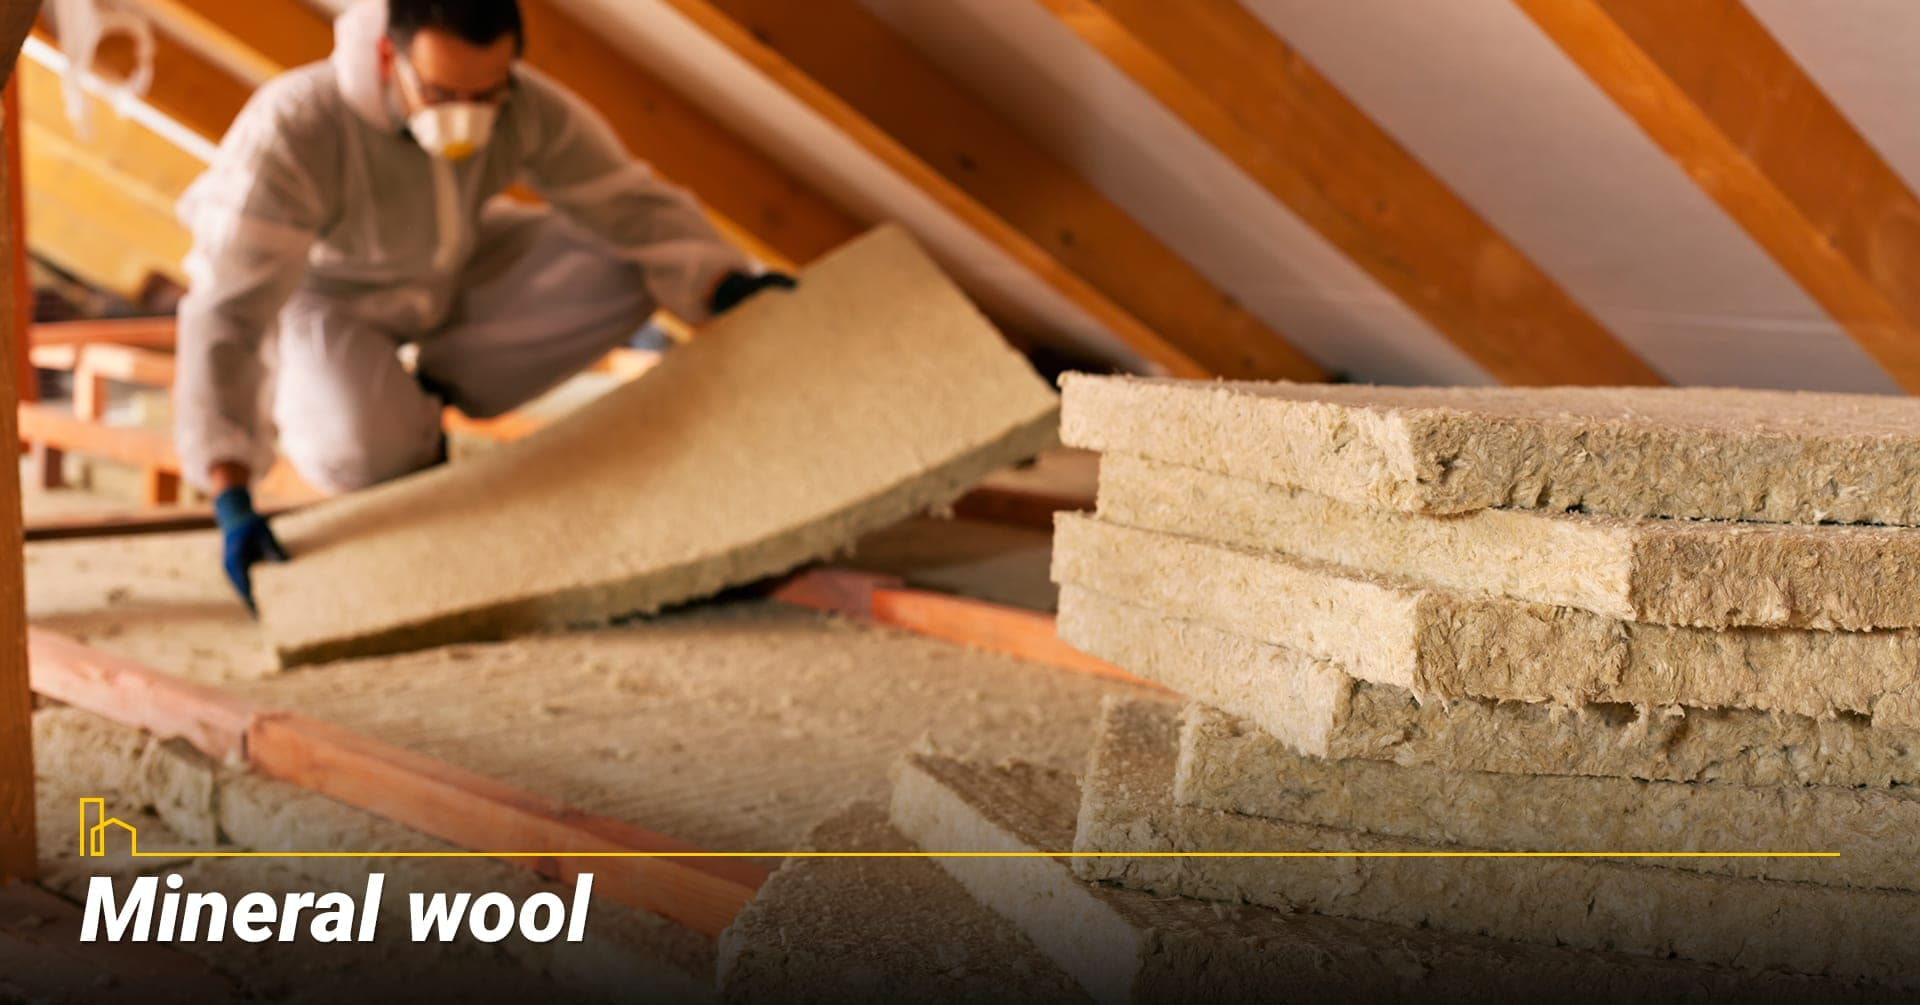 Mineral wool, use mineral wool as insulation